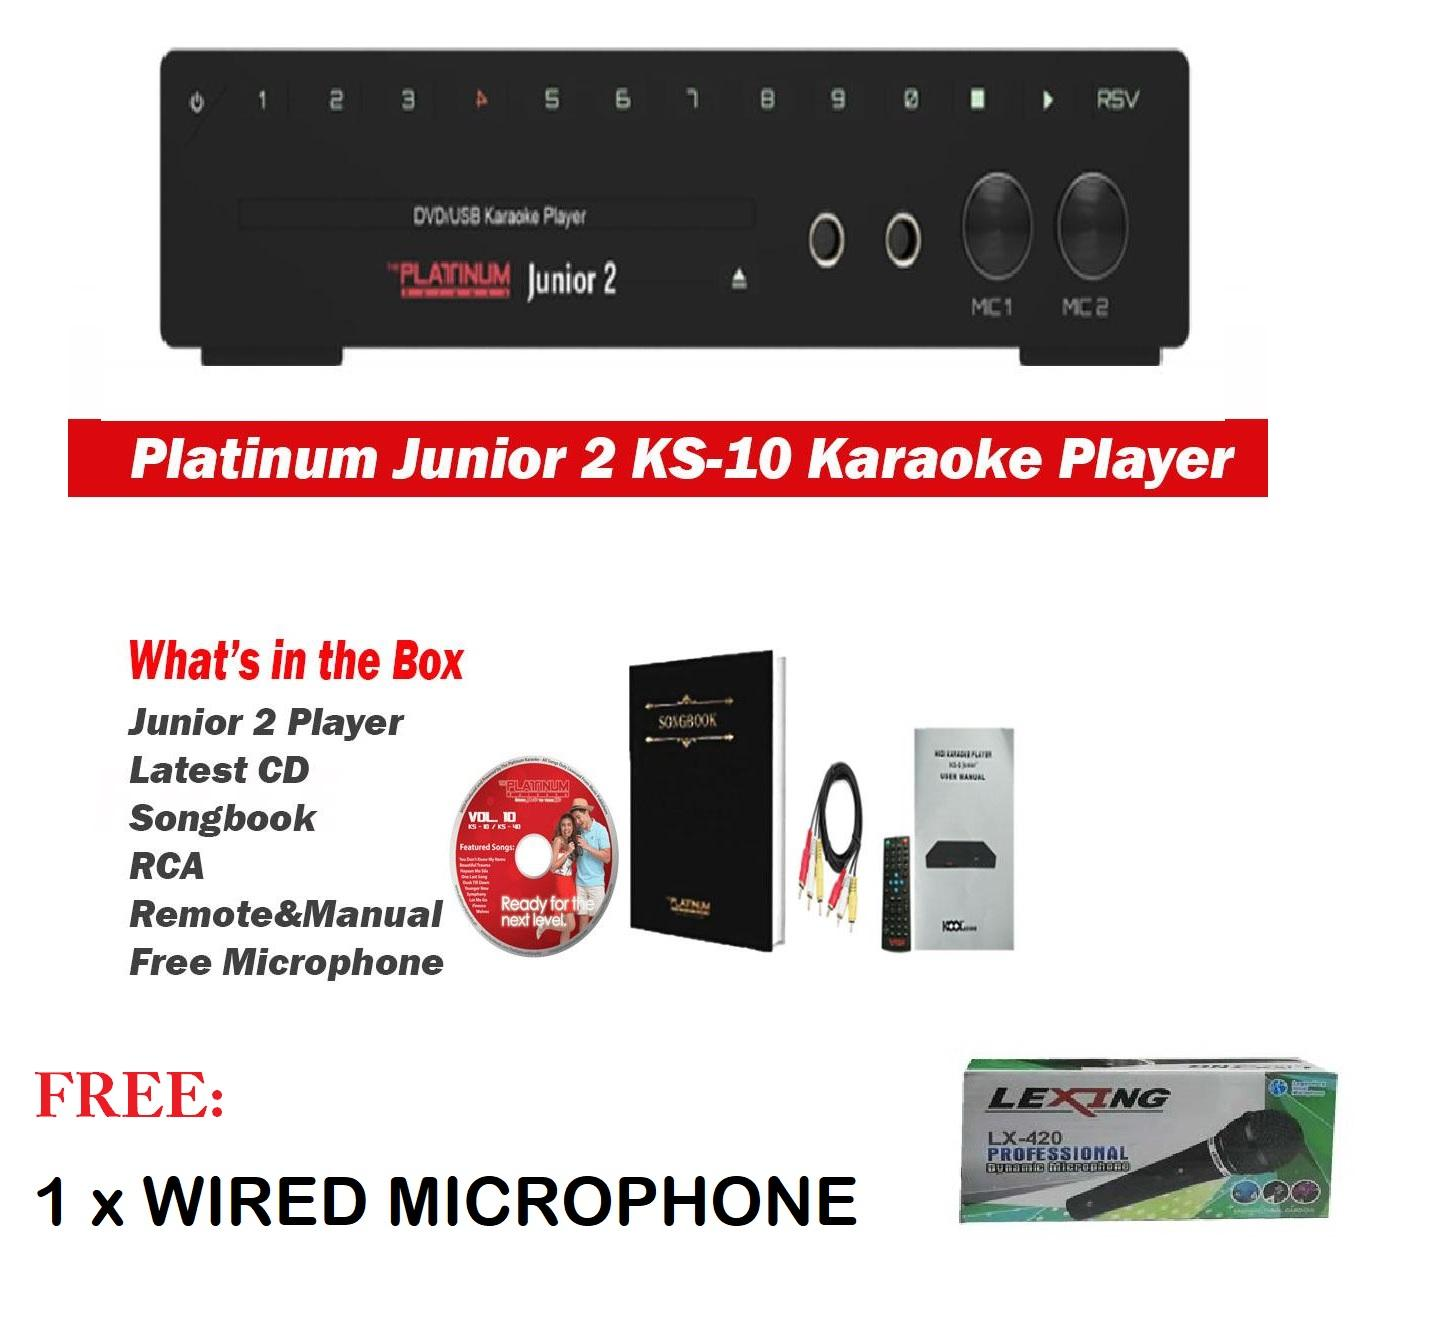 The Platinum Junior 2 Ks-10 Dvd Karaoke Player W/ Free Wired Microphone Lexing By Pearly Fashion.